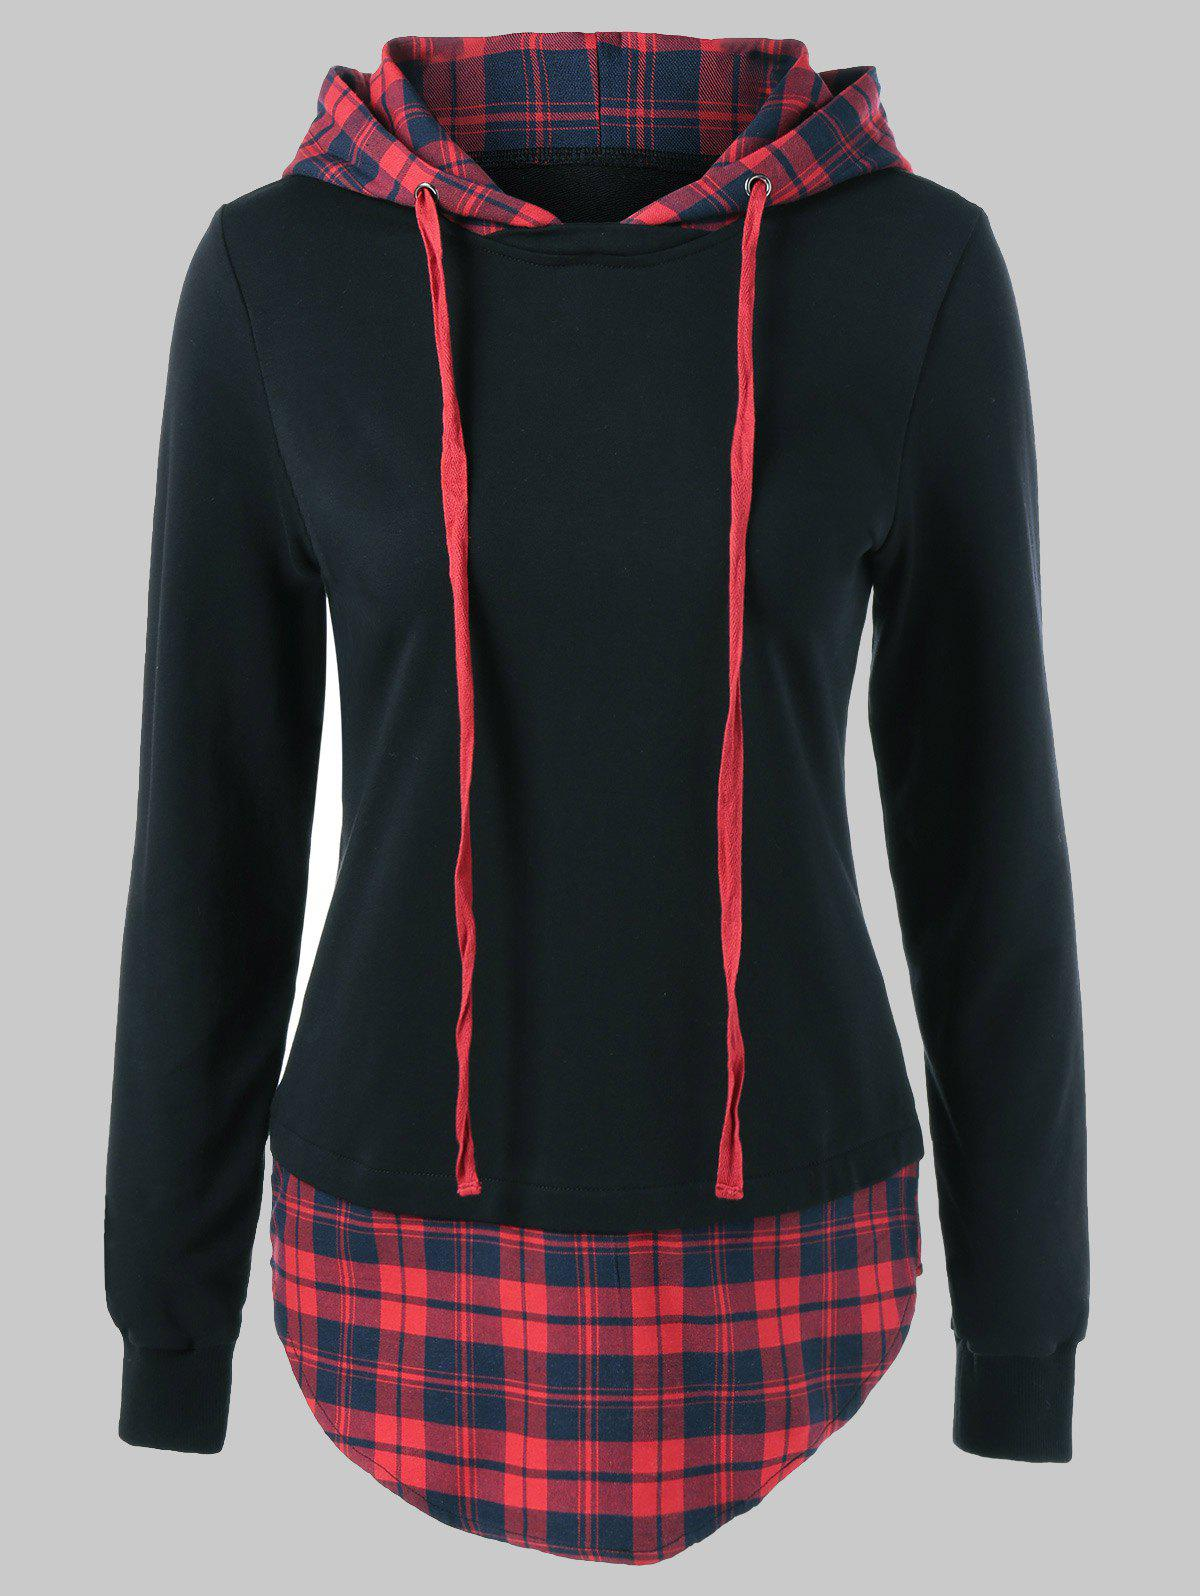 Drawstring Plaid Plus Size HoodieWOMEN<br><br>Size: XL; Color: RED WITH BLACK; Material: Spandex; Shirt Length: Long; Sleeve Length: Full; Style: Casual; Pattern Style: Plaid; Season: Fall,Spring; Weight: 0.4000kg; Package Contents: 1 x Hoodie;